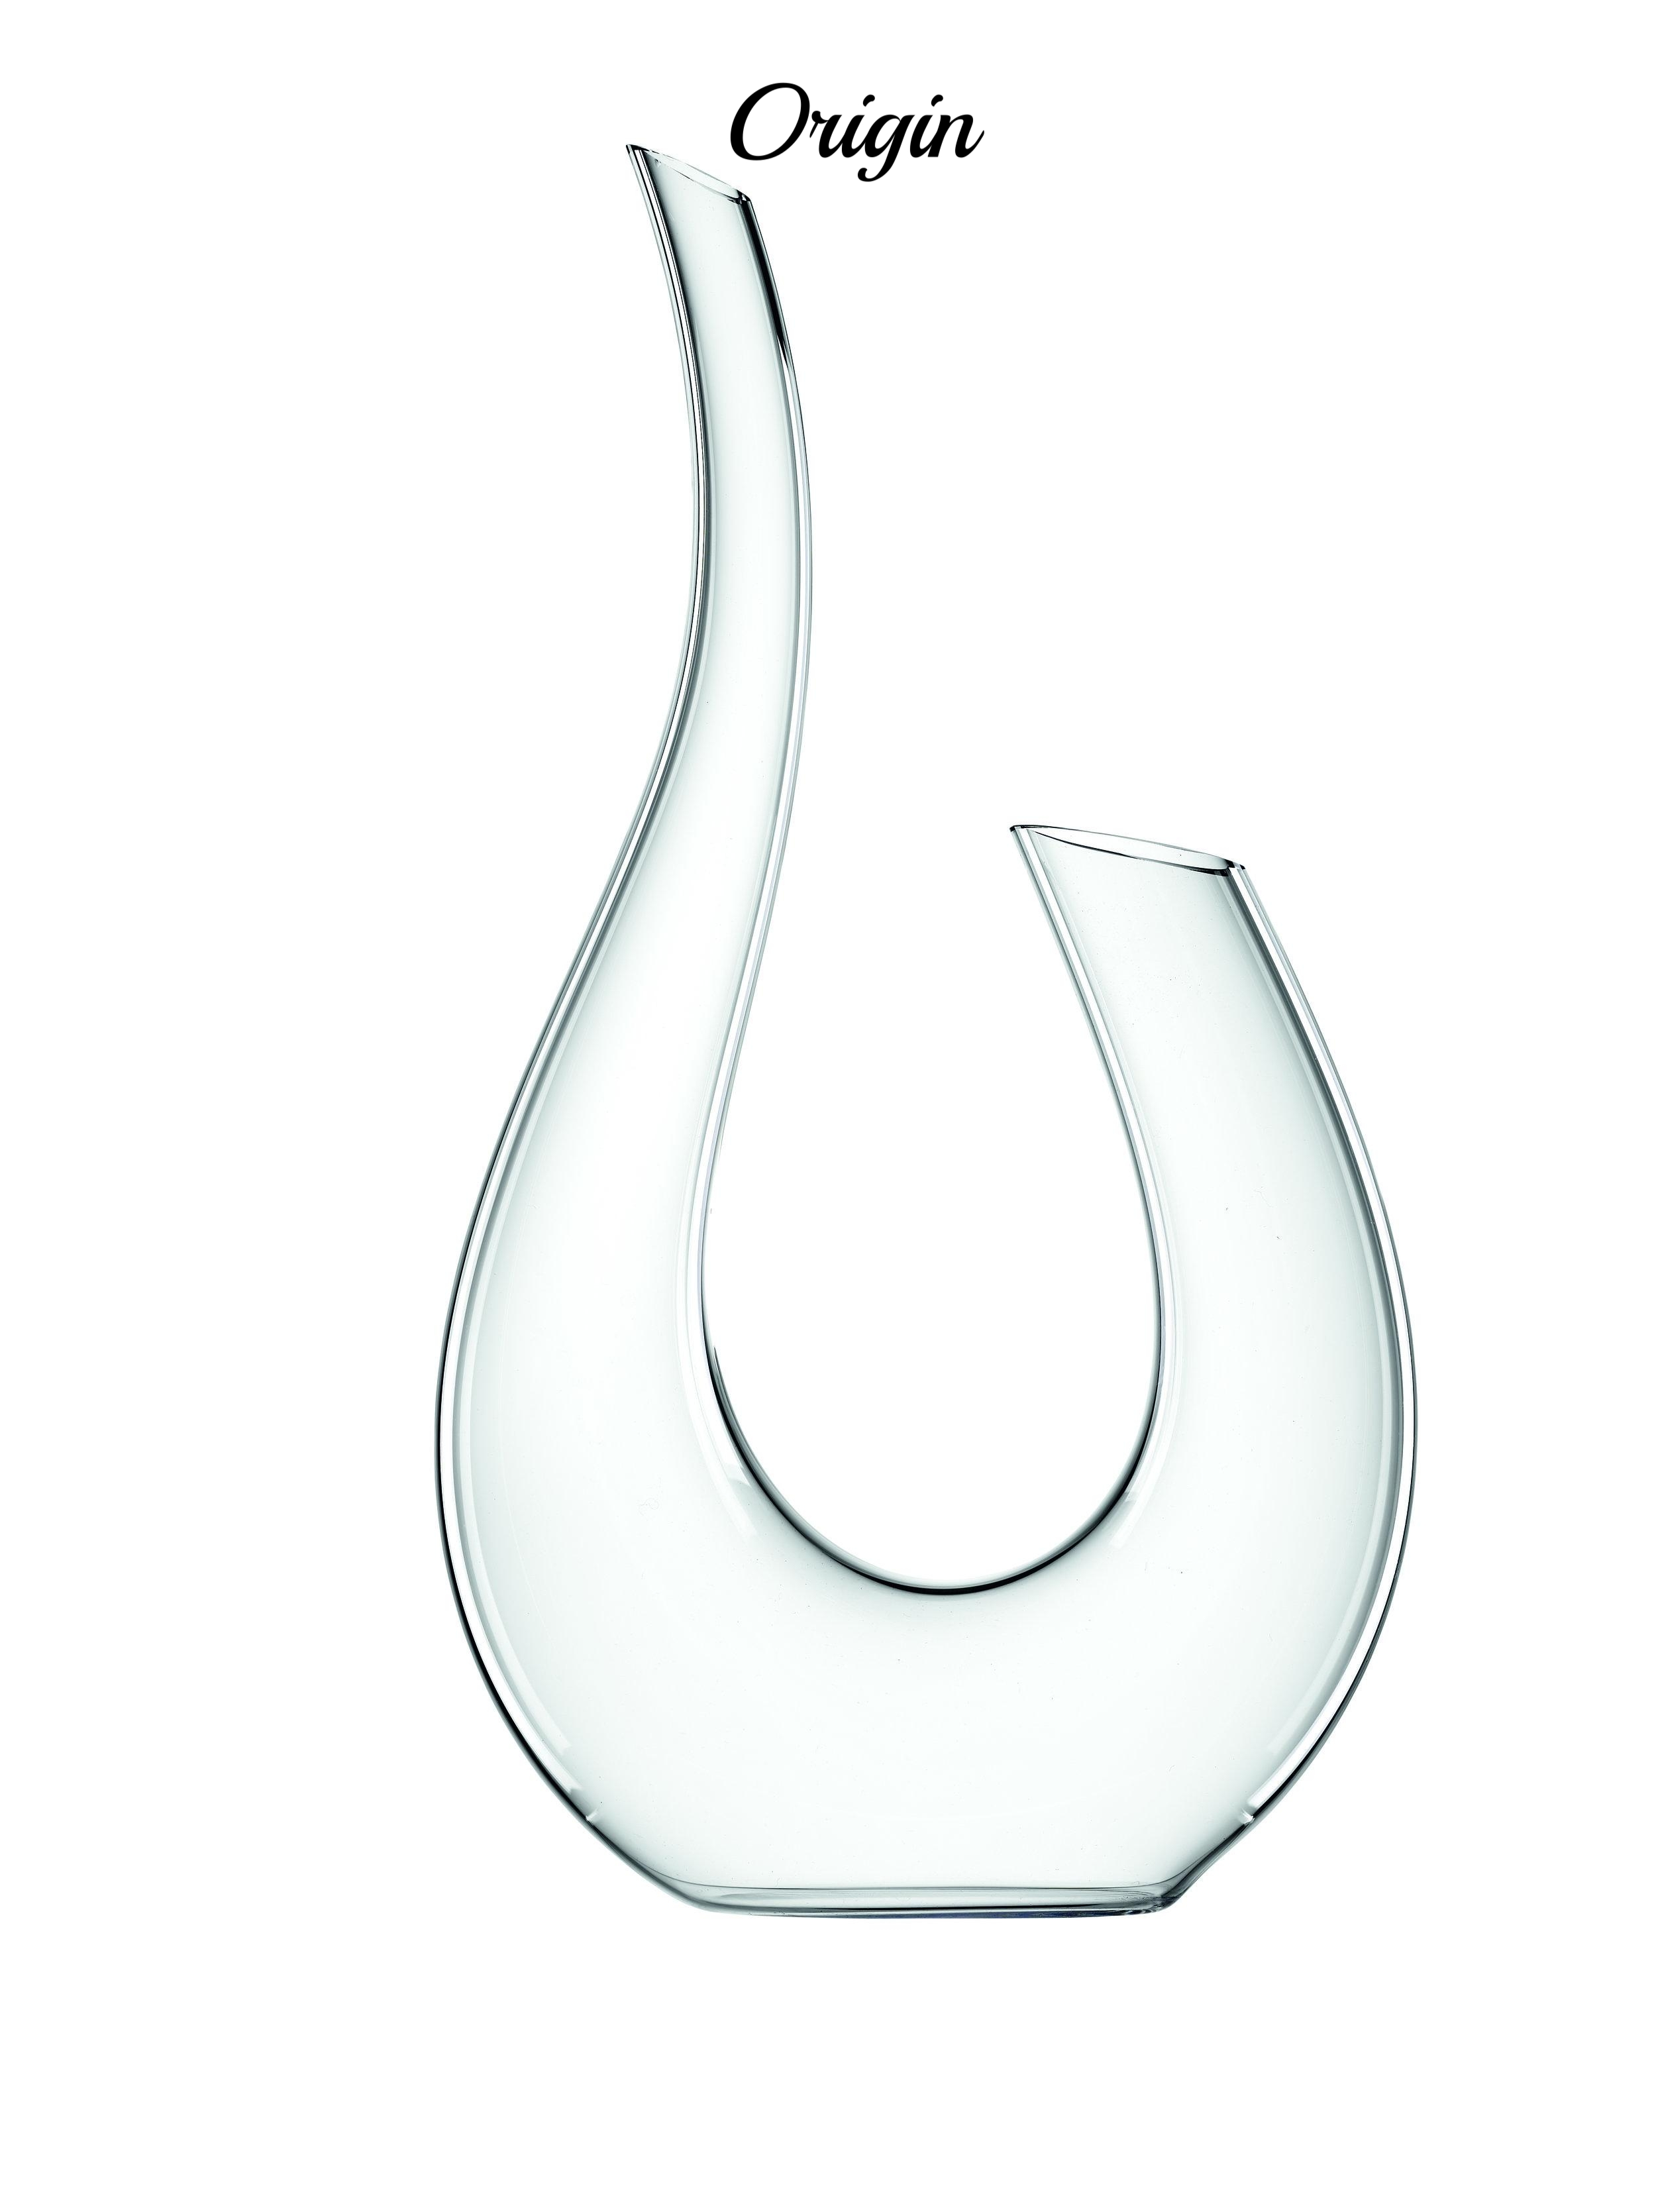 7550159 Origin Decanter.jpg